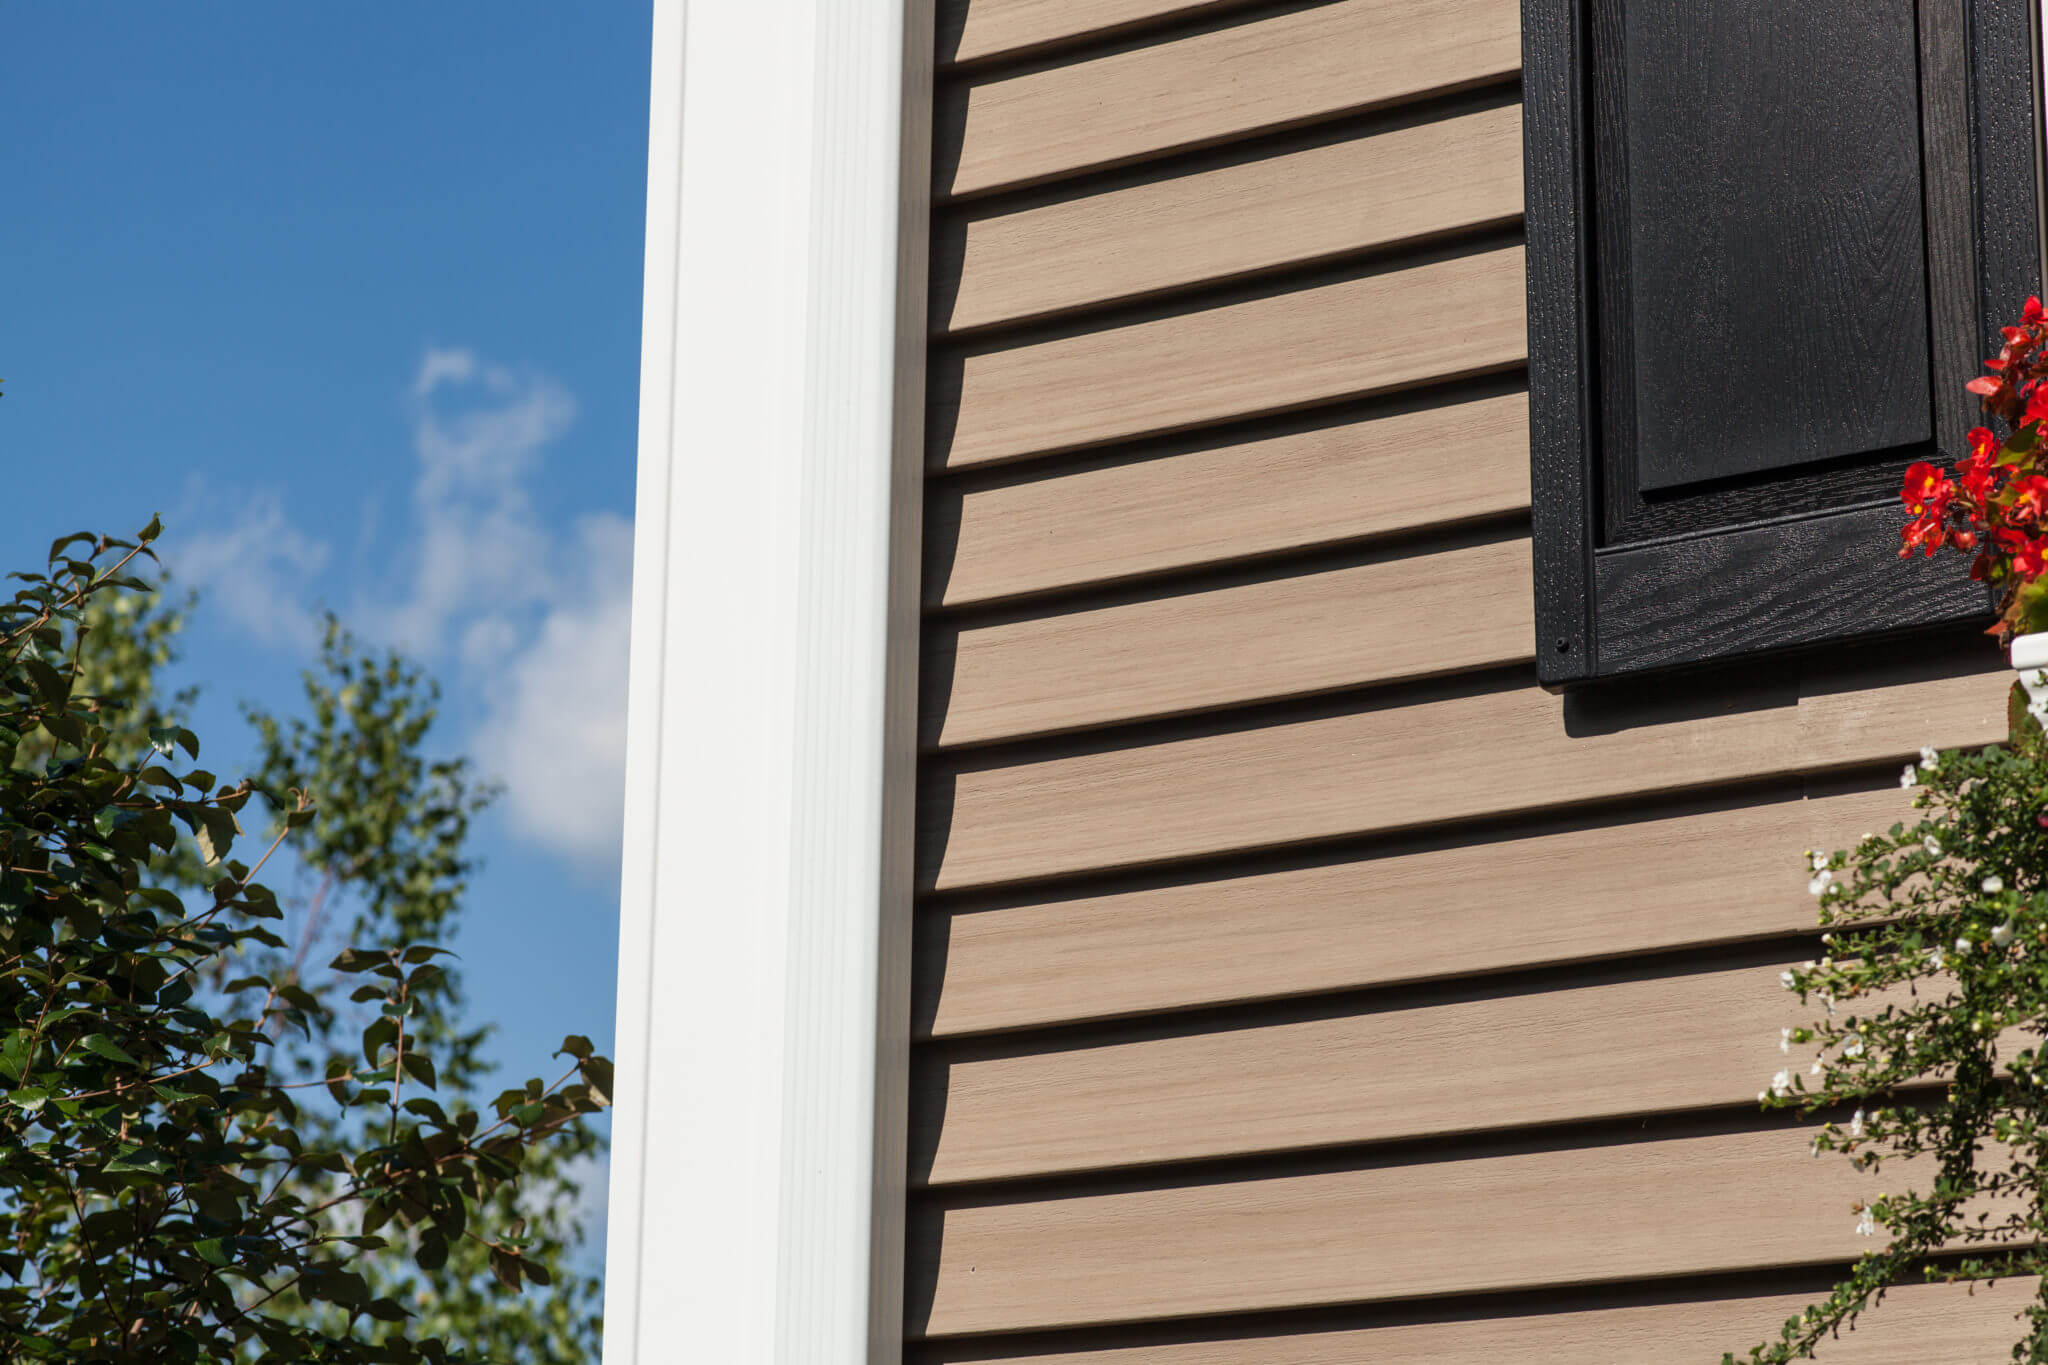 Close Up of Vinyl Siding in Tan And Black Trim Details on RI Home